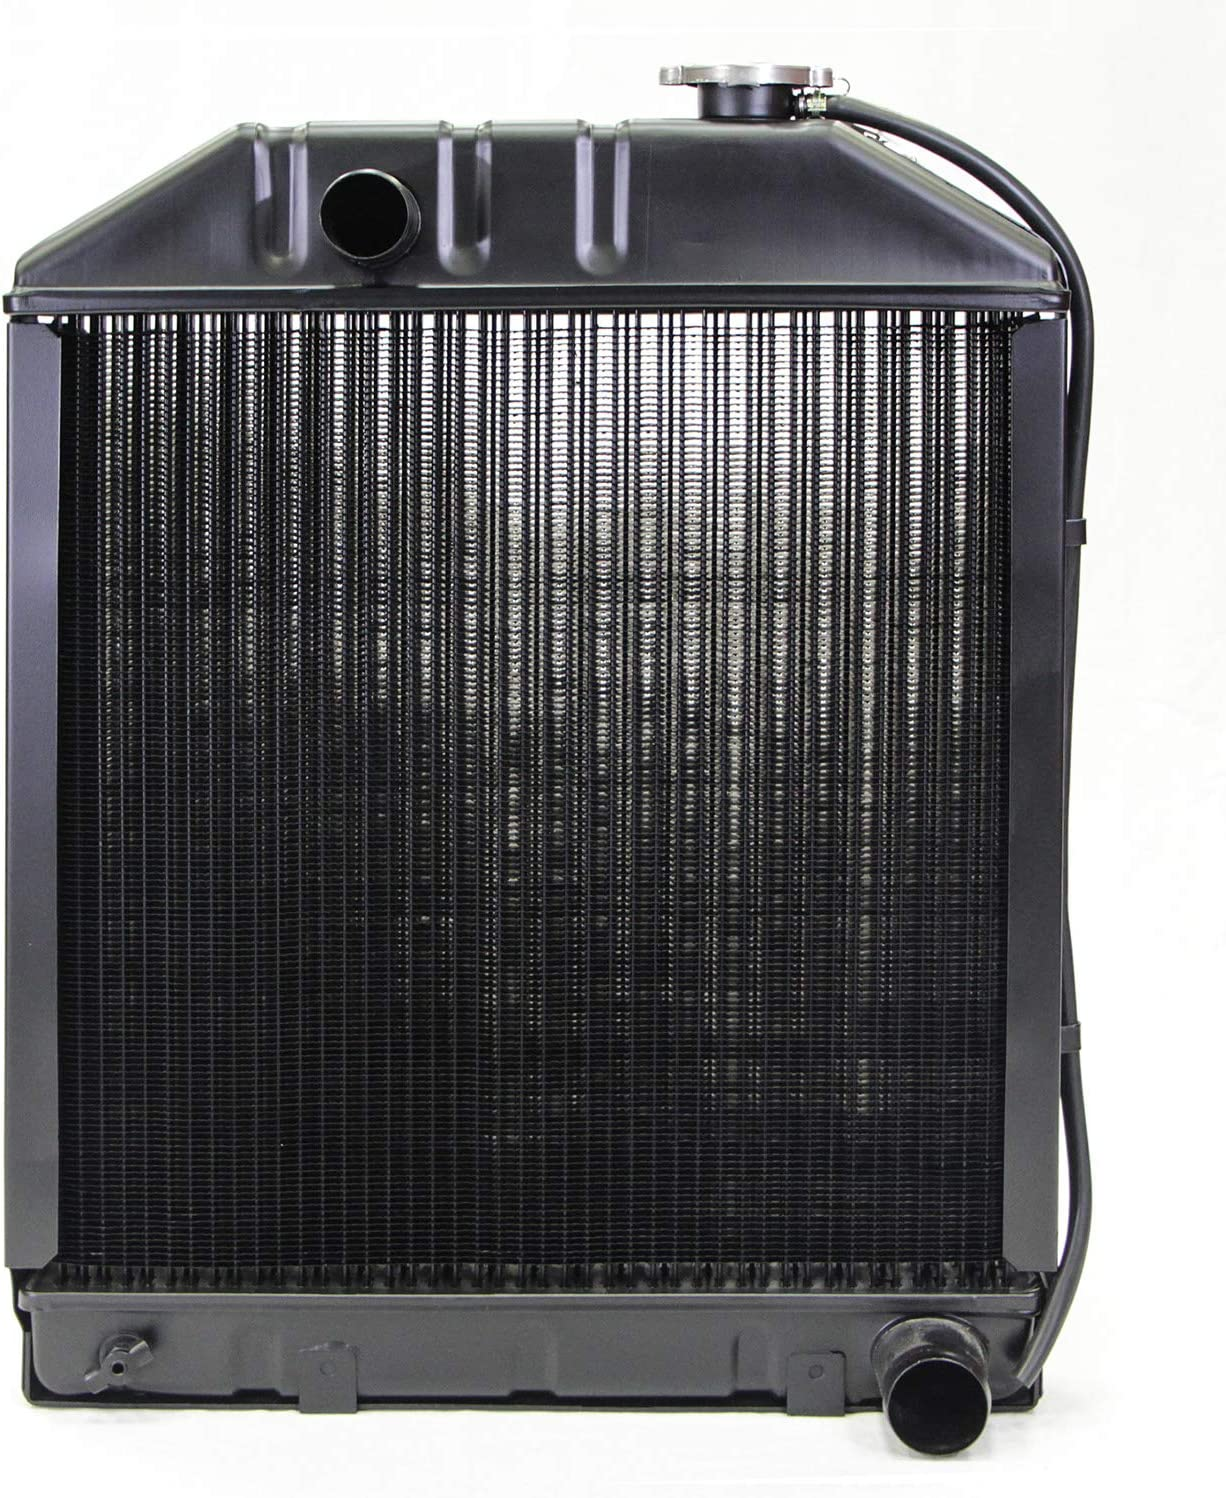 NEW Replacement Radiator w/Cap For Ford Tractor 5000 5100 5600 6600 C7NN8005 C7NN8005L C7NN805E (24075AM)